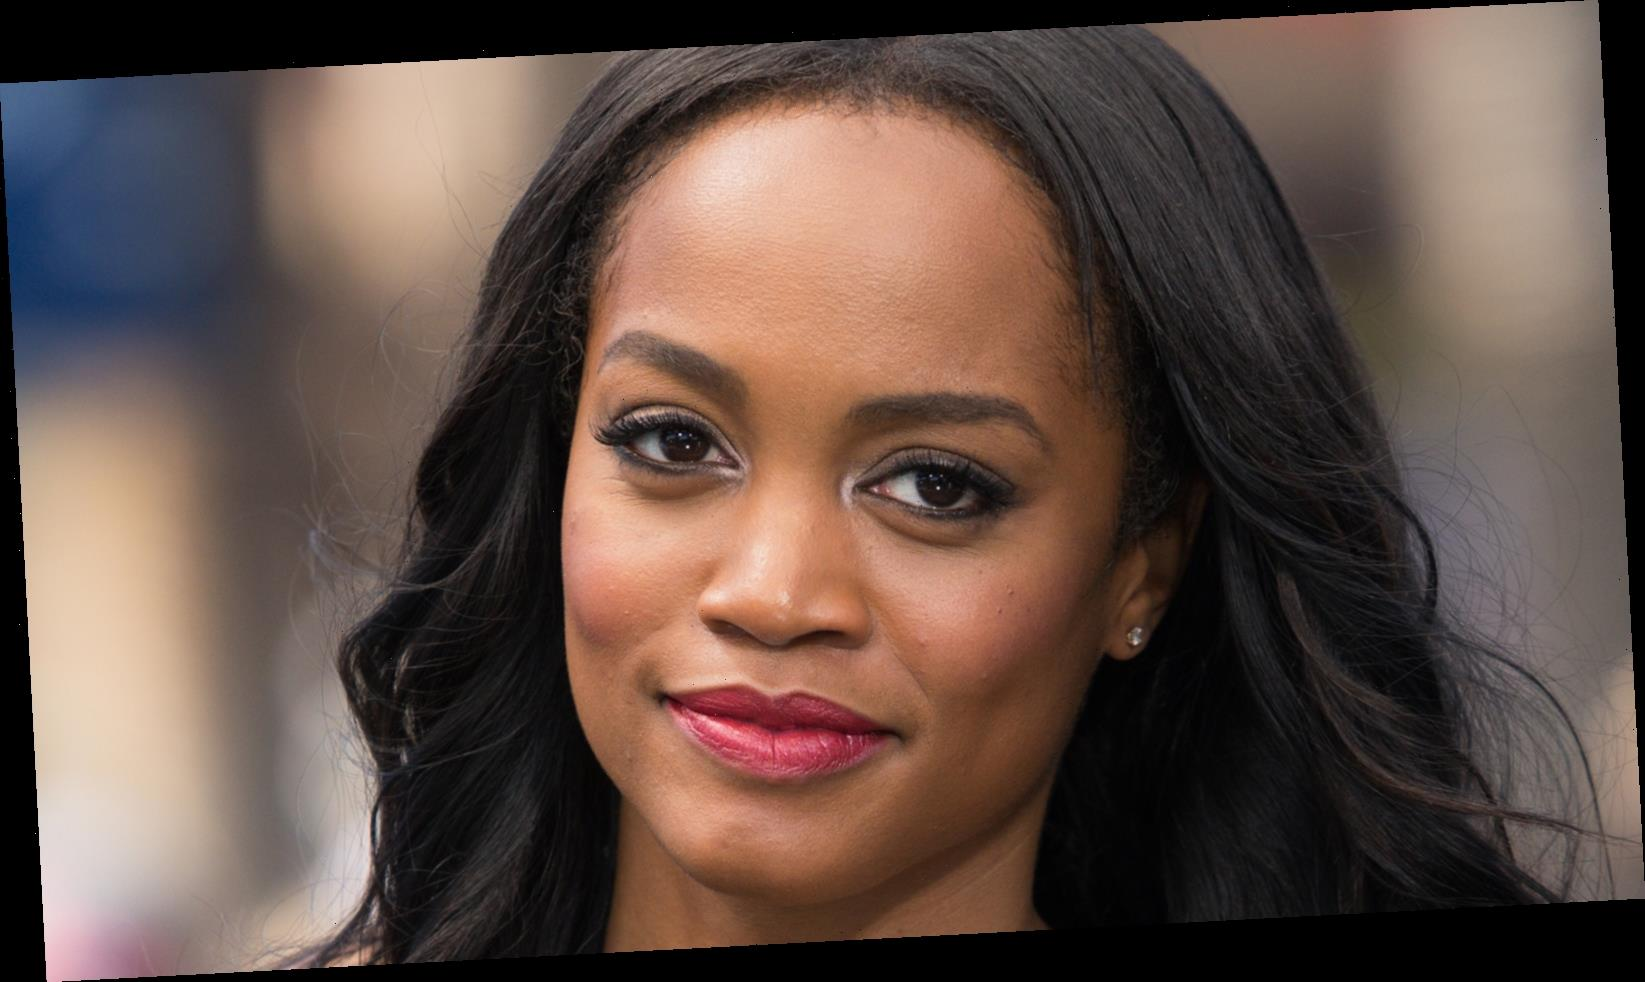 Rachel Lindsay Weighs In On The Future Of The Bachelor Franchise After Chris Harrison's Racism Controversy